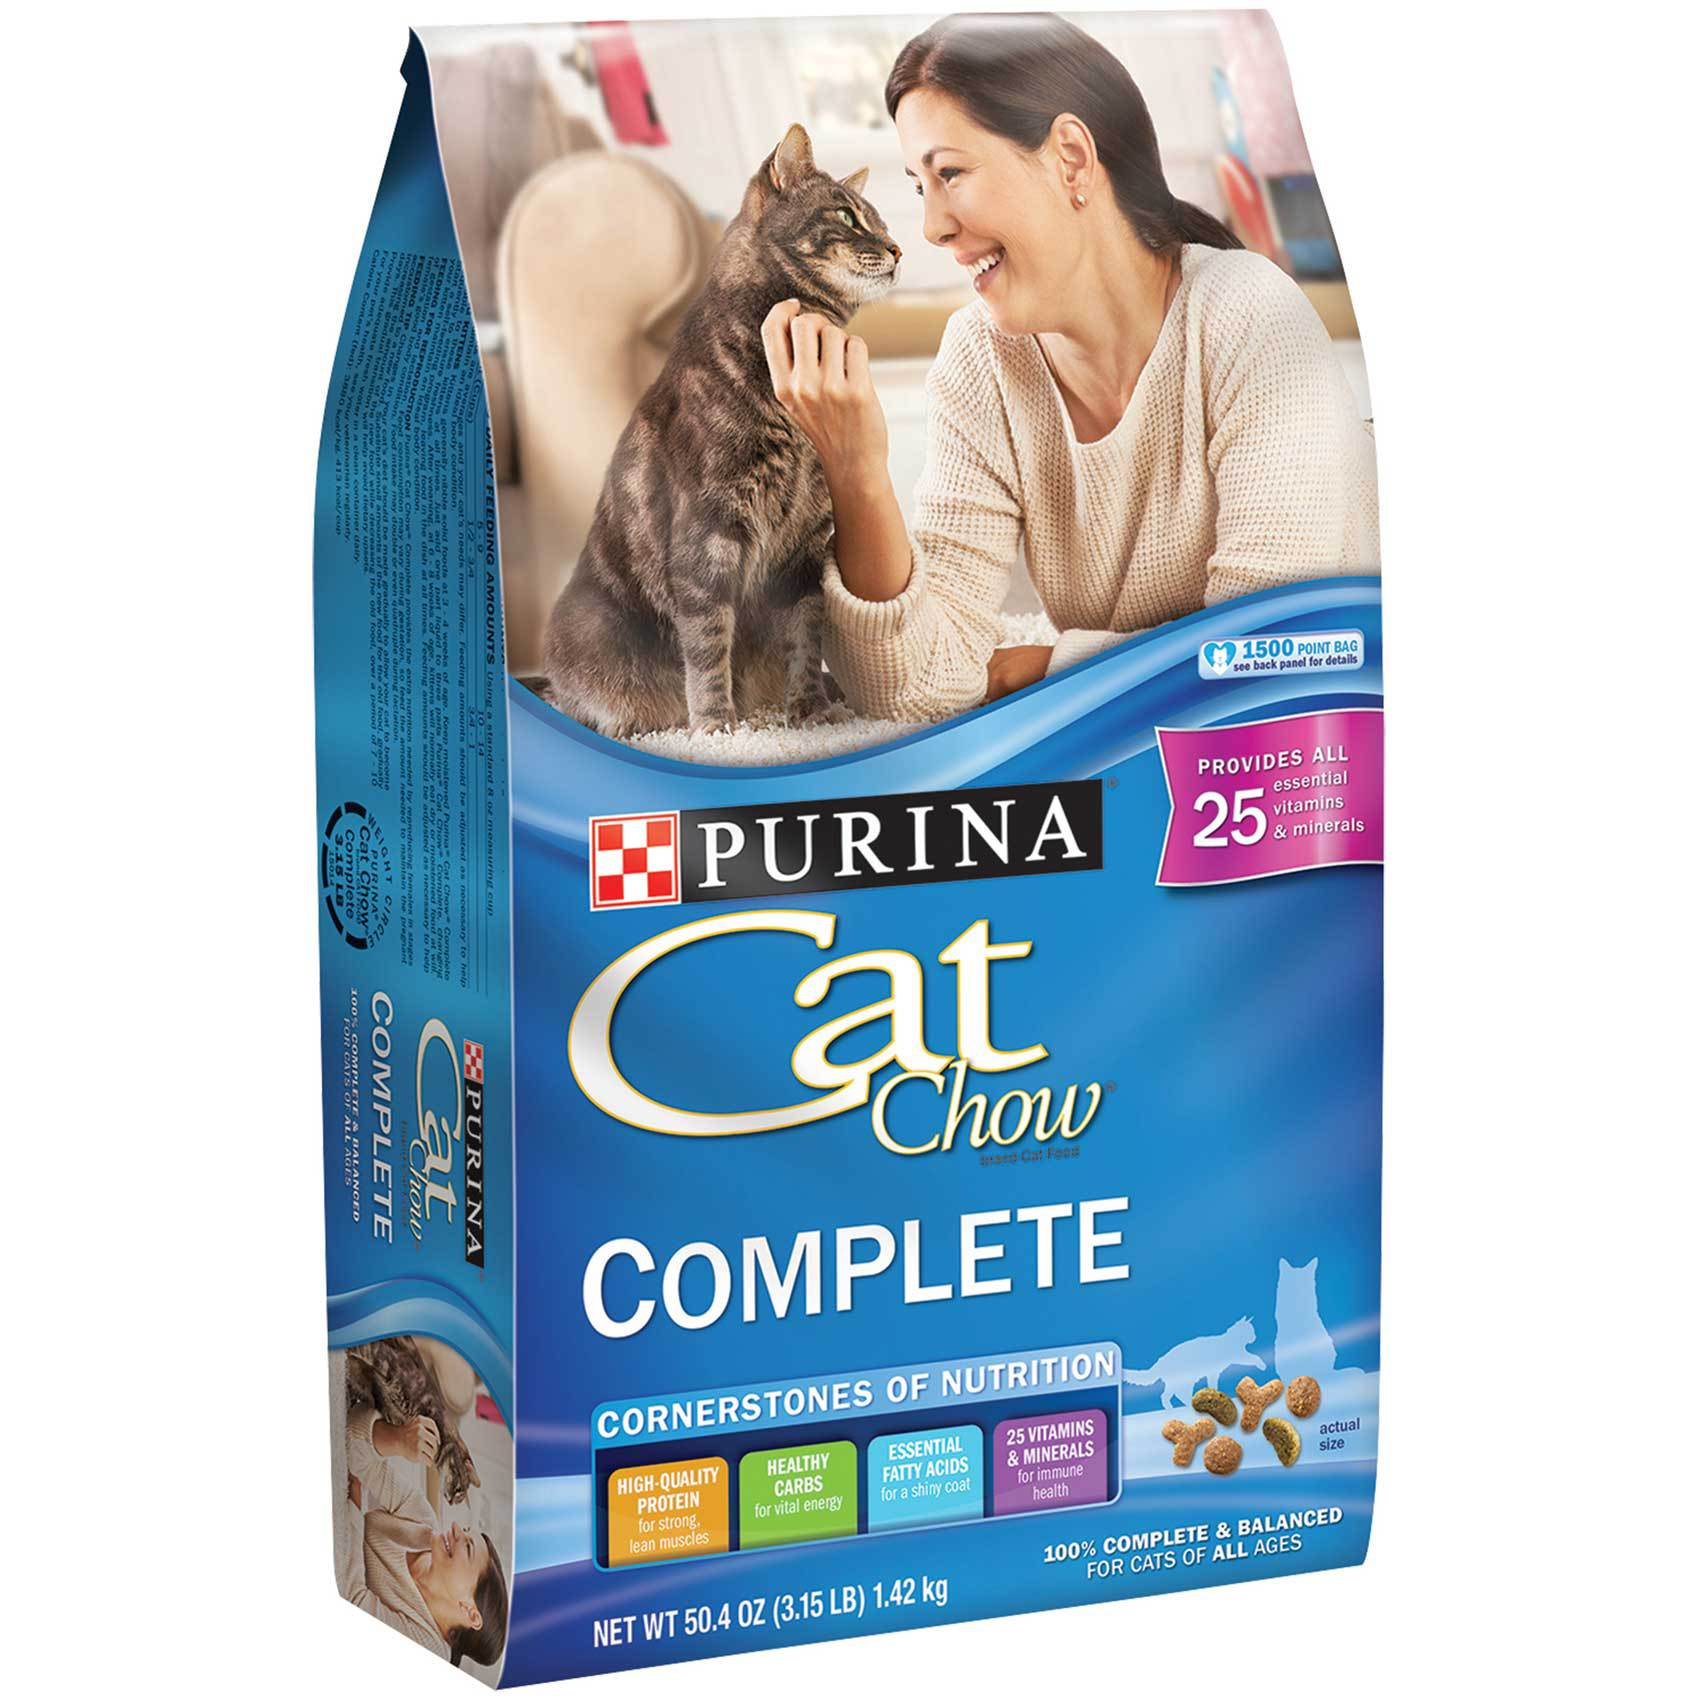 PURINA CAT CHOW COMPLETE 1.42 KG